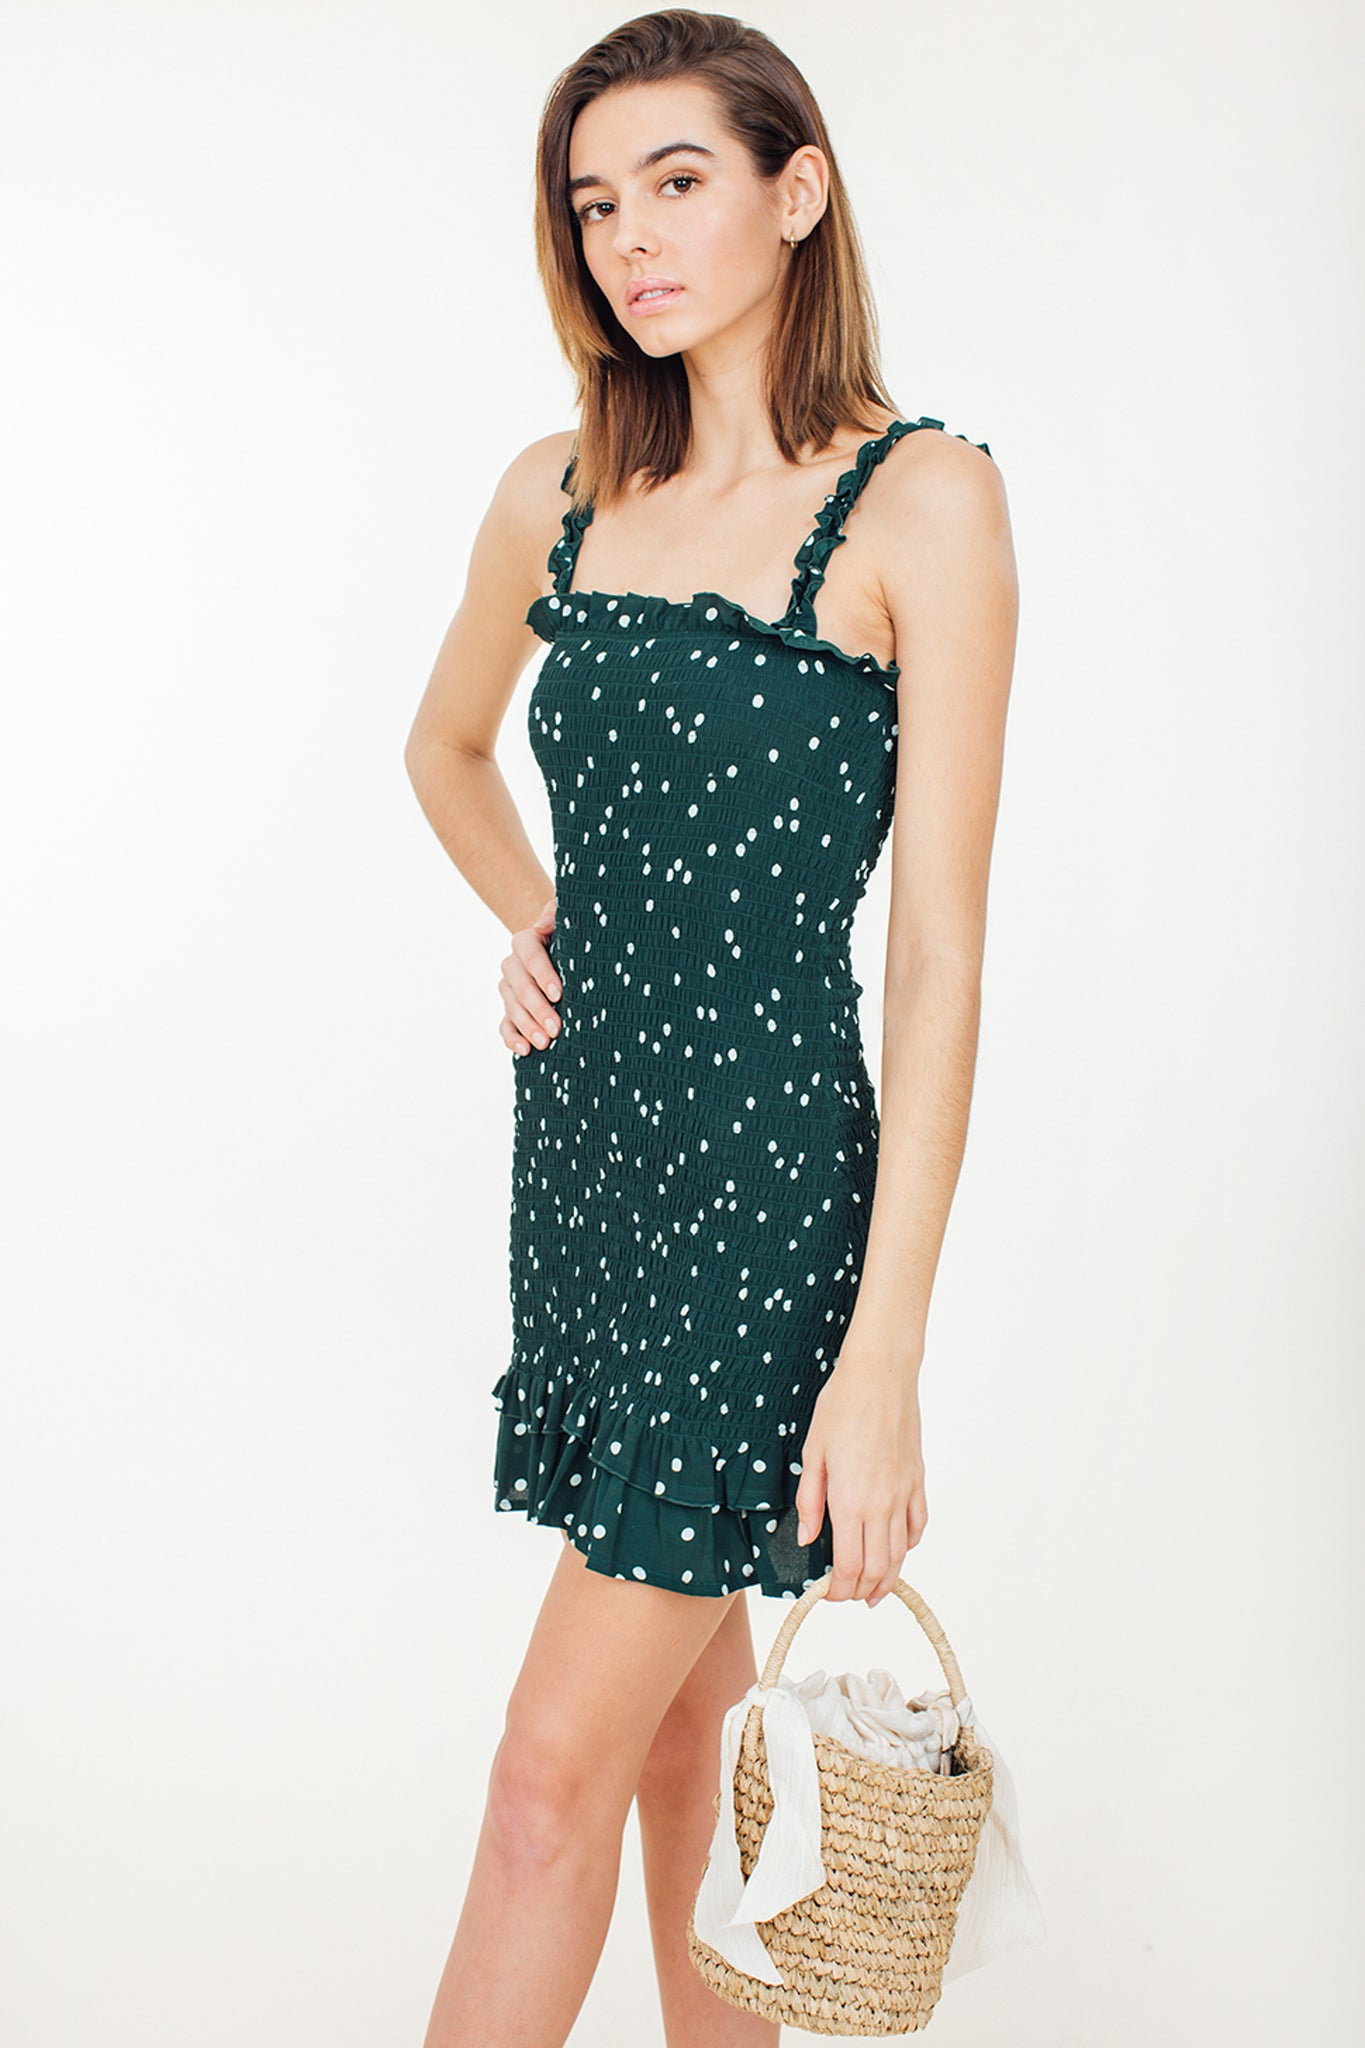 Del Mar Dress - Wylie Grey